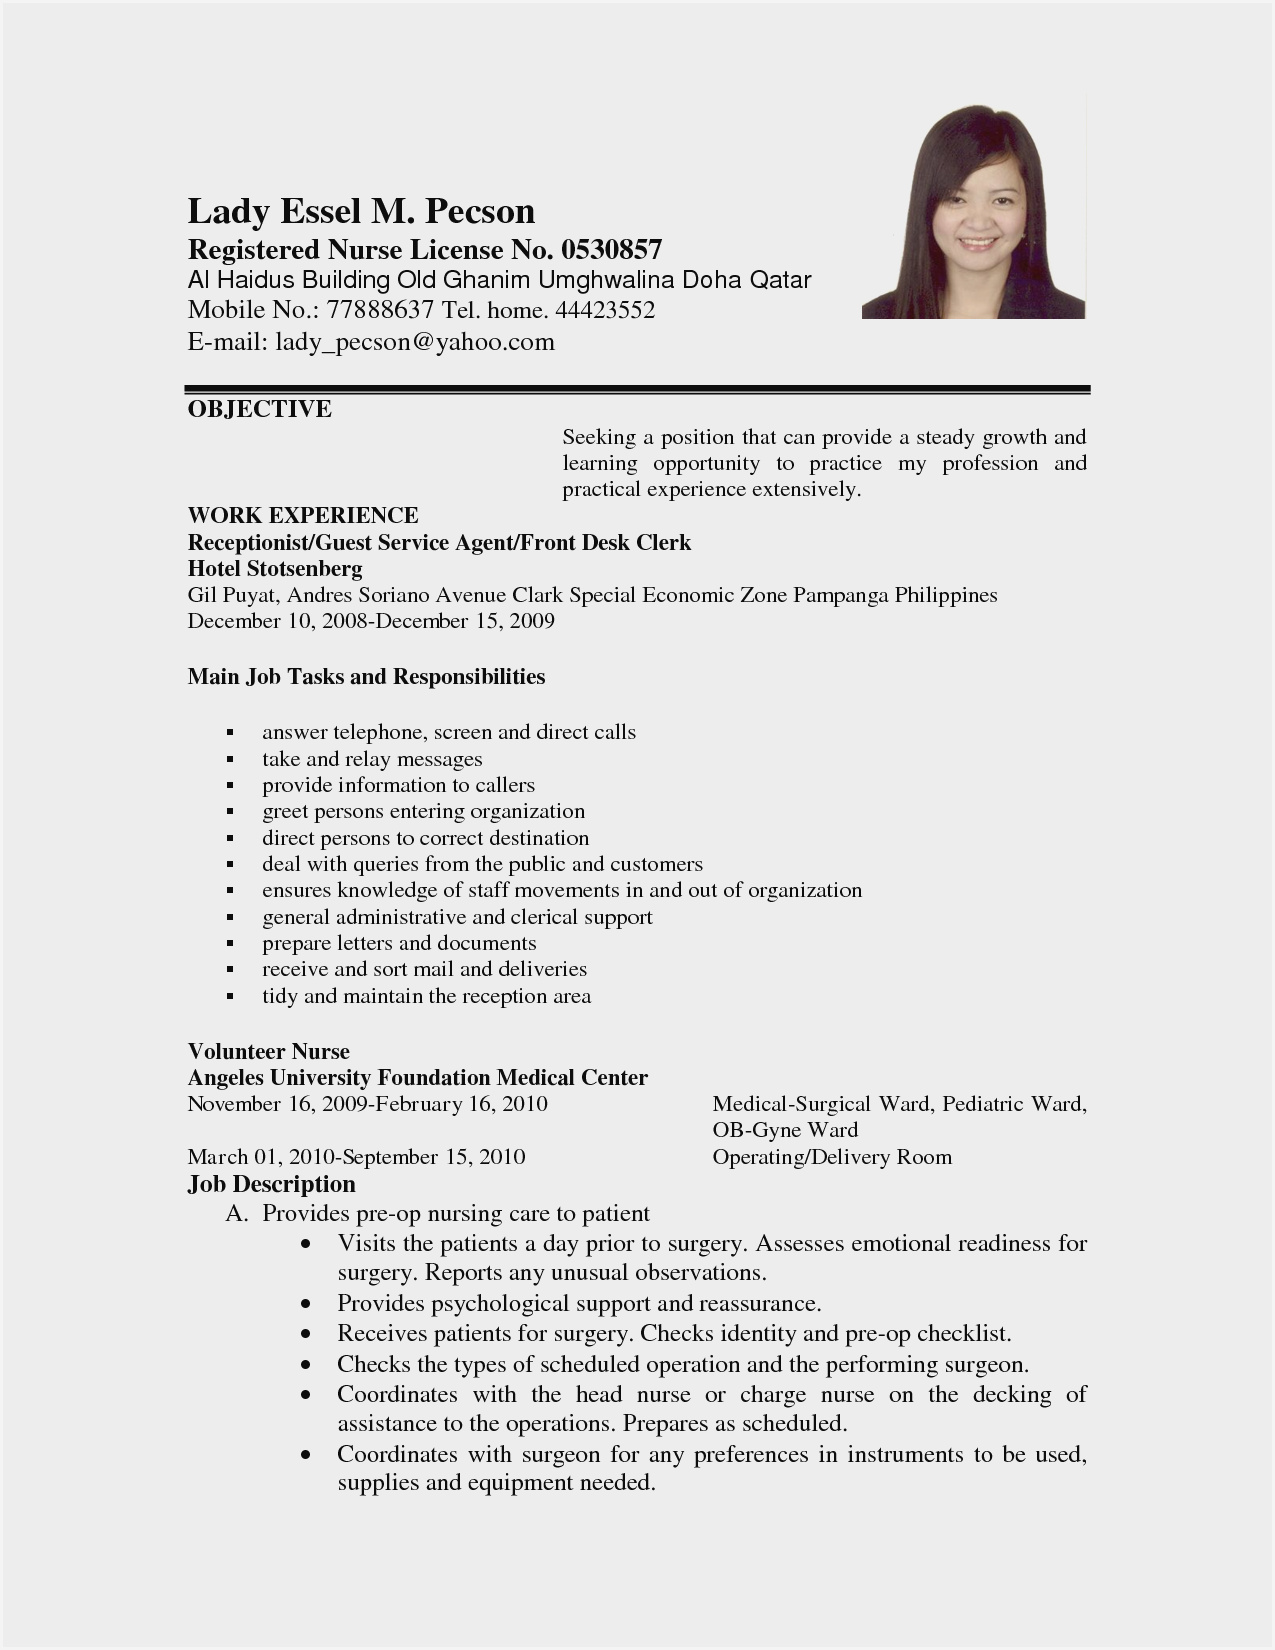 job resume email subject creative event planner application and sample master writer mrw Resume Job Application Resume Sample